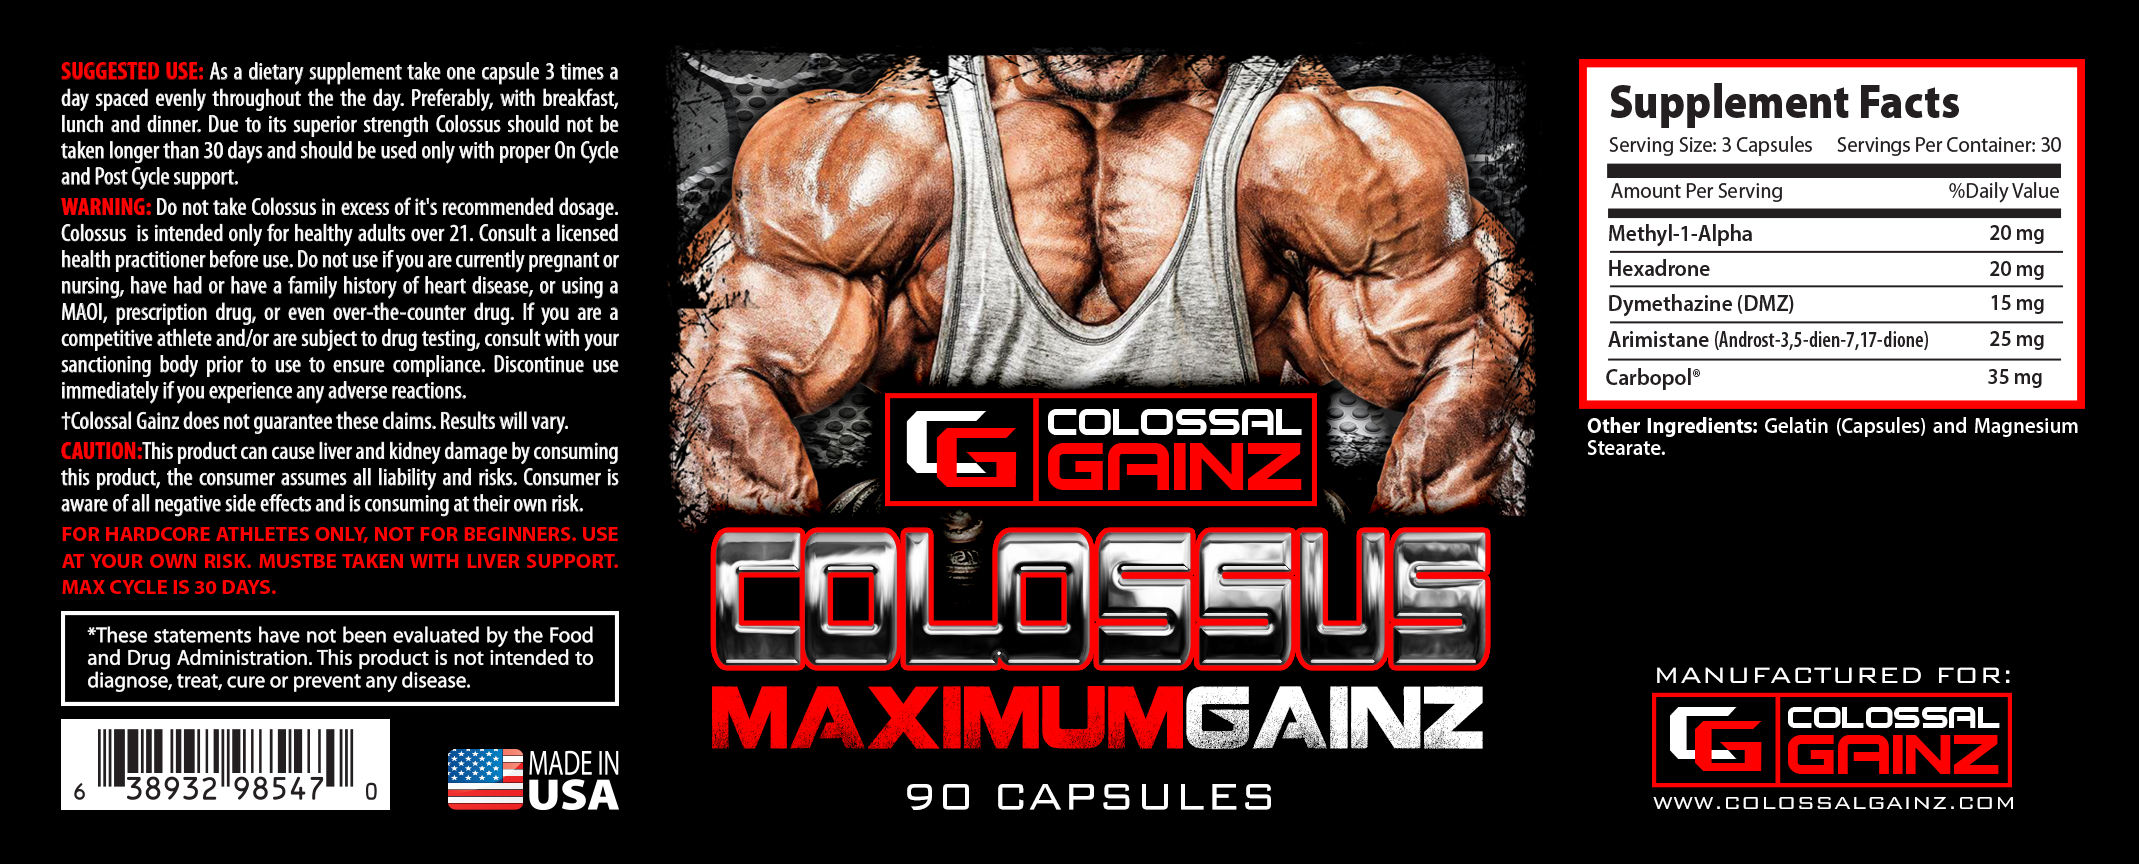 Colossus Label